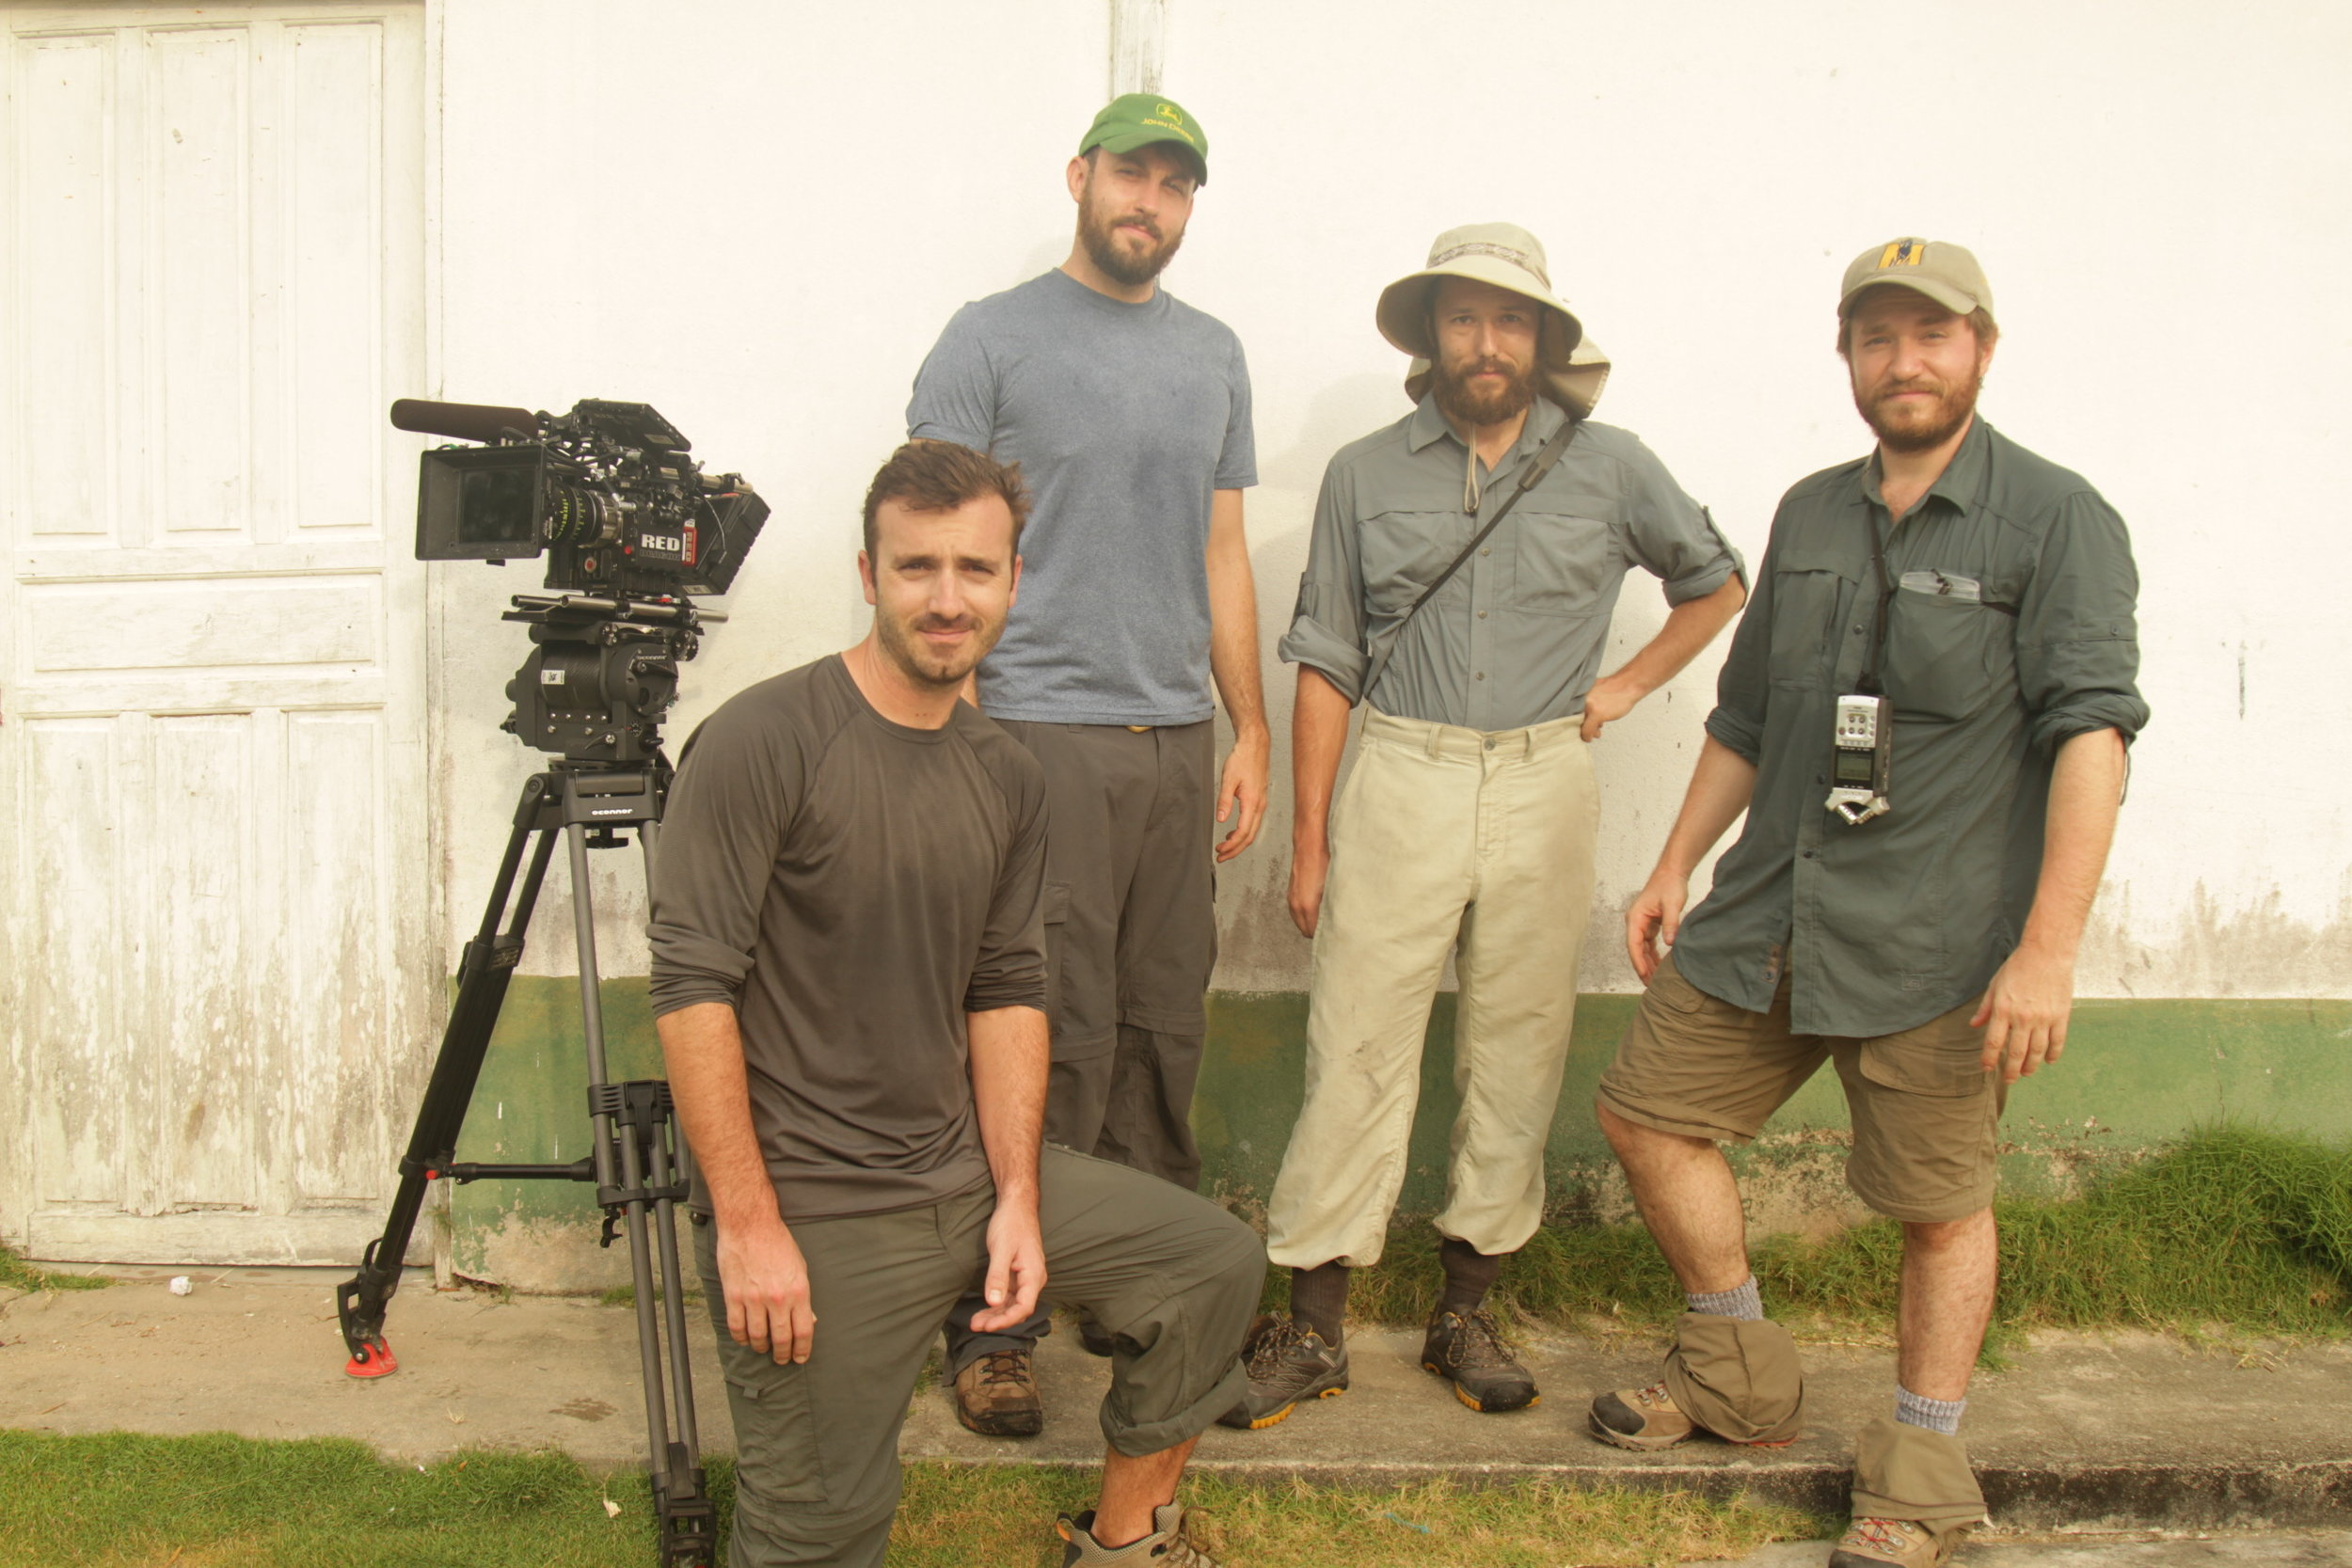 The US crew: Producer Dane Lilleguard, DP Will Basantha, AC Alexander Paul, and director Clay Jeter. Photograph by fixer Thiago Da Costa.